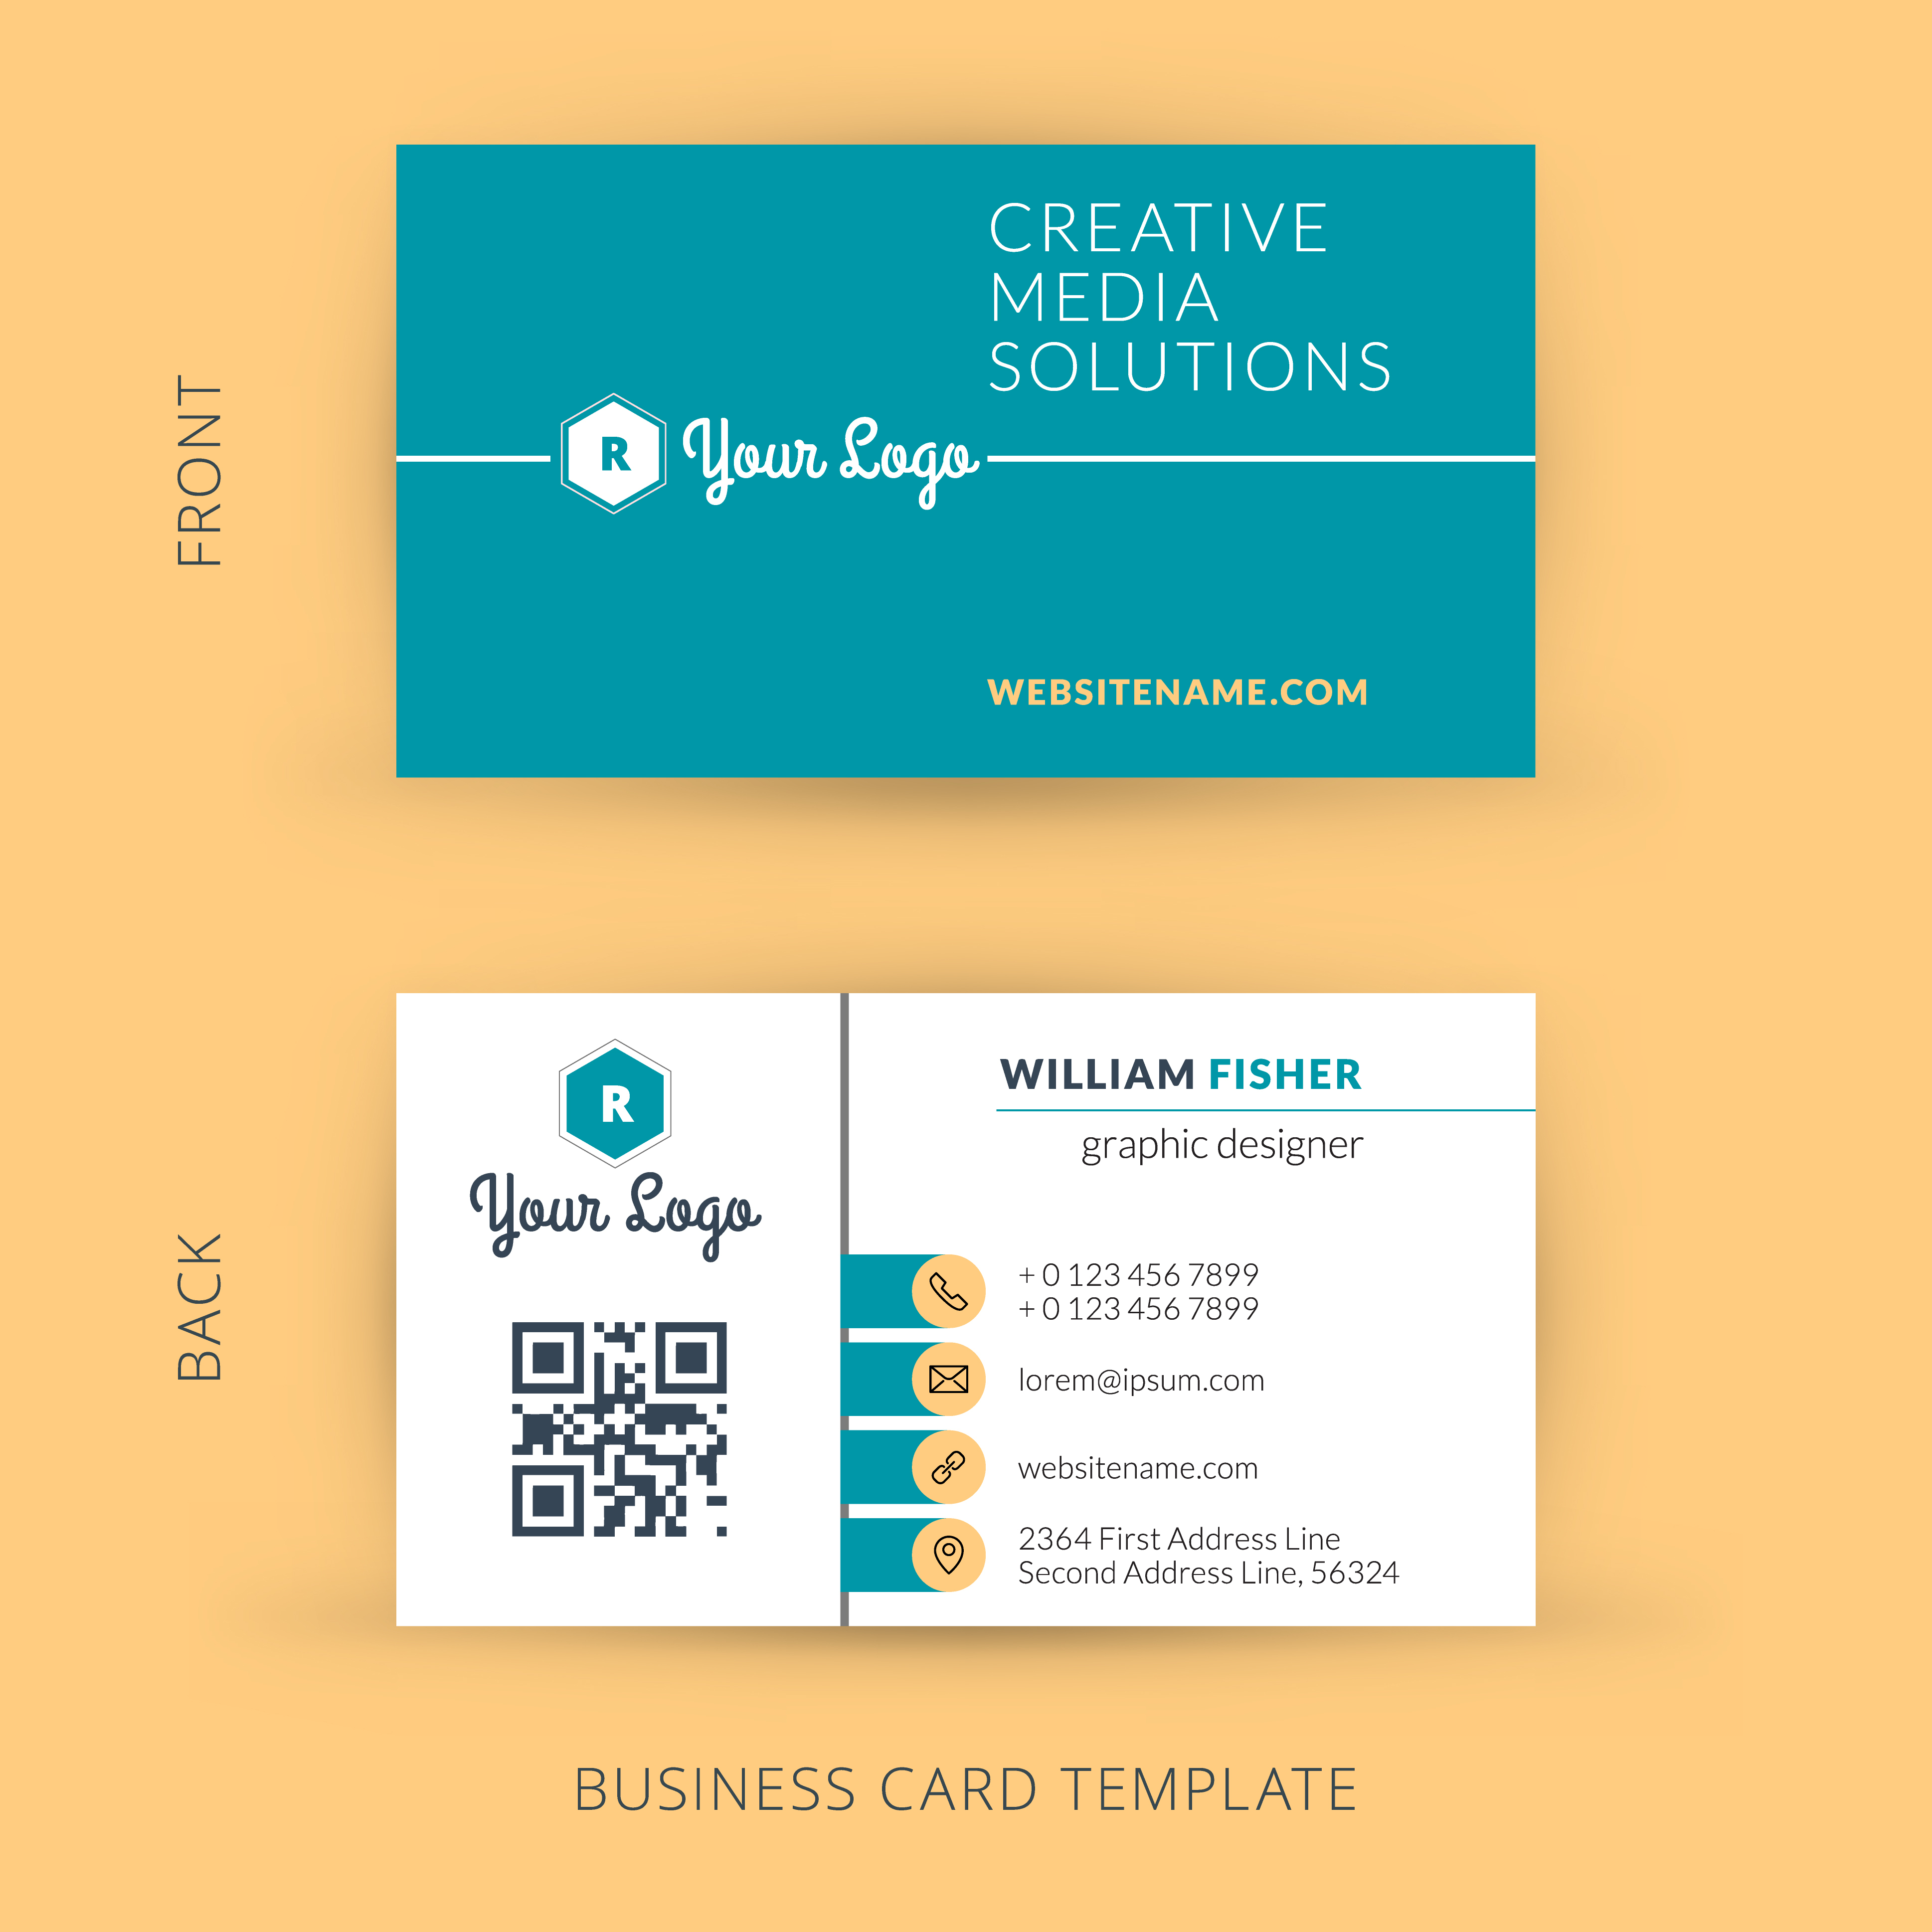 turquoise and white business cards with qr code on yellow background